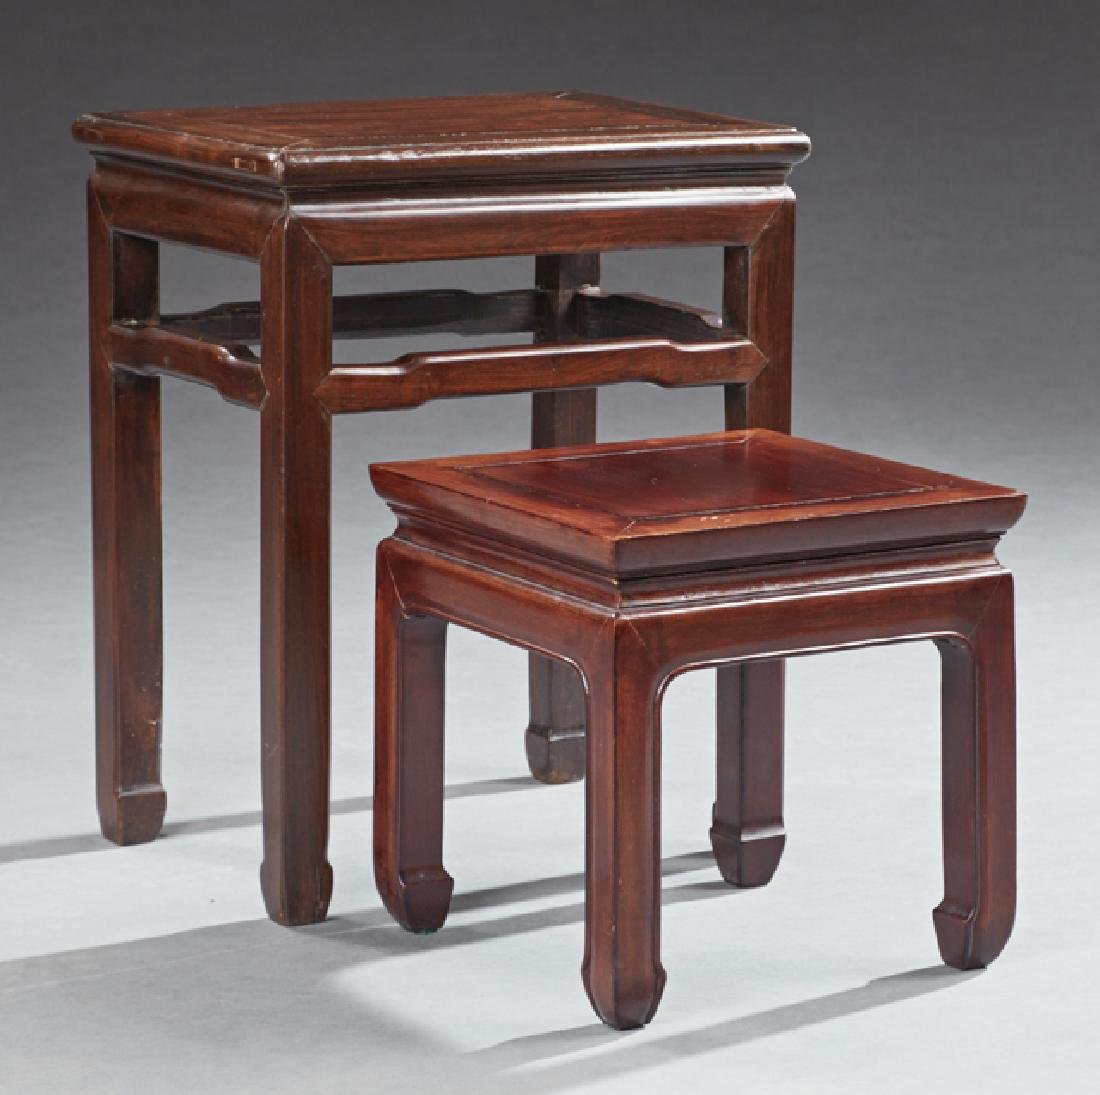 Nest of Two Chinese Carved Mahogany Tables, 20th c., on